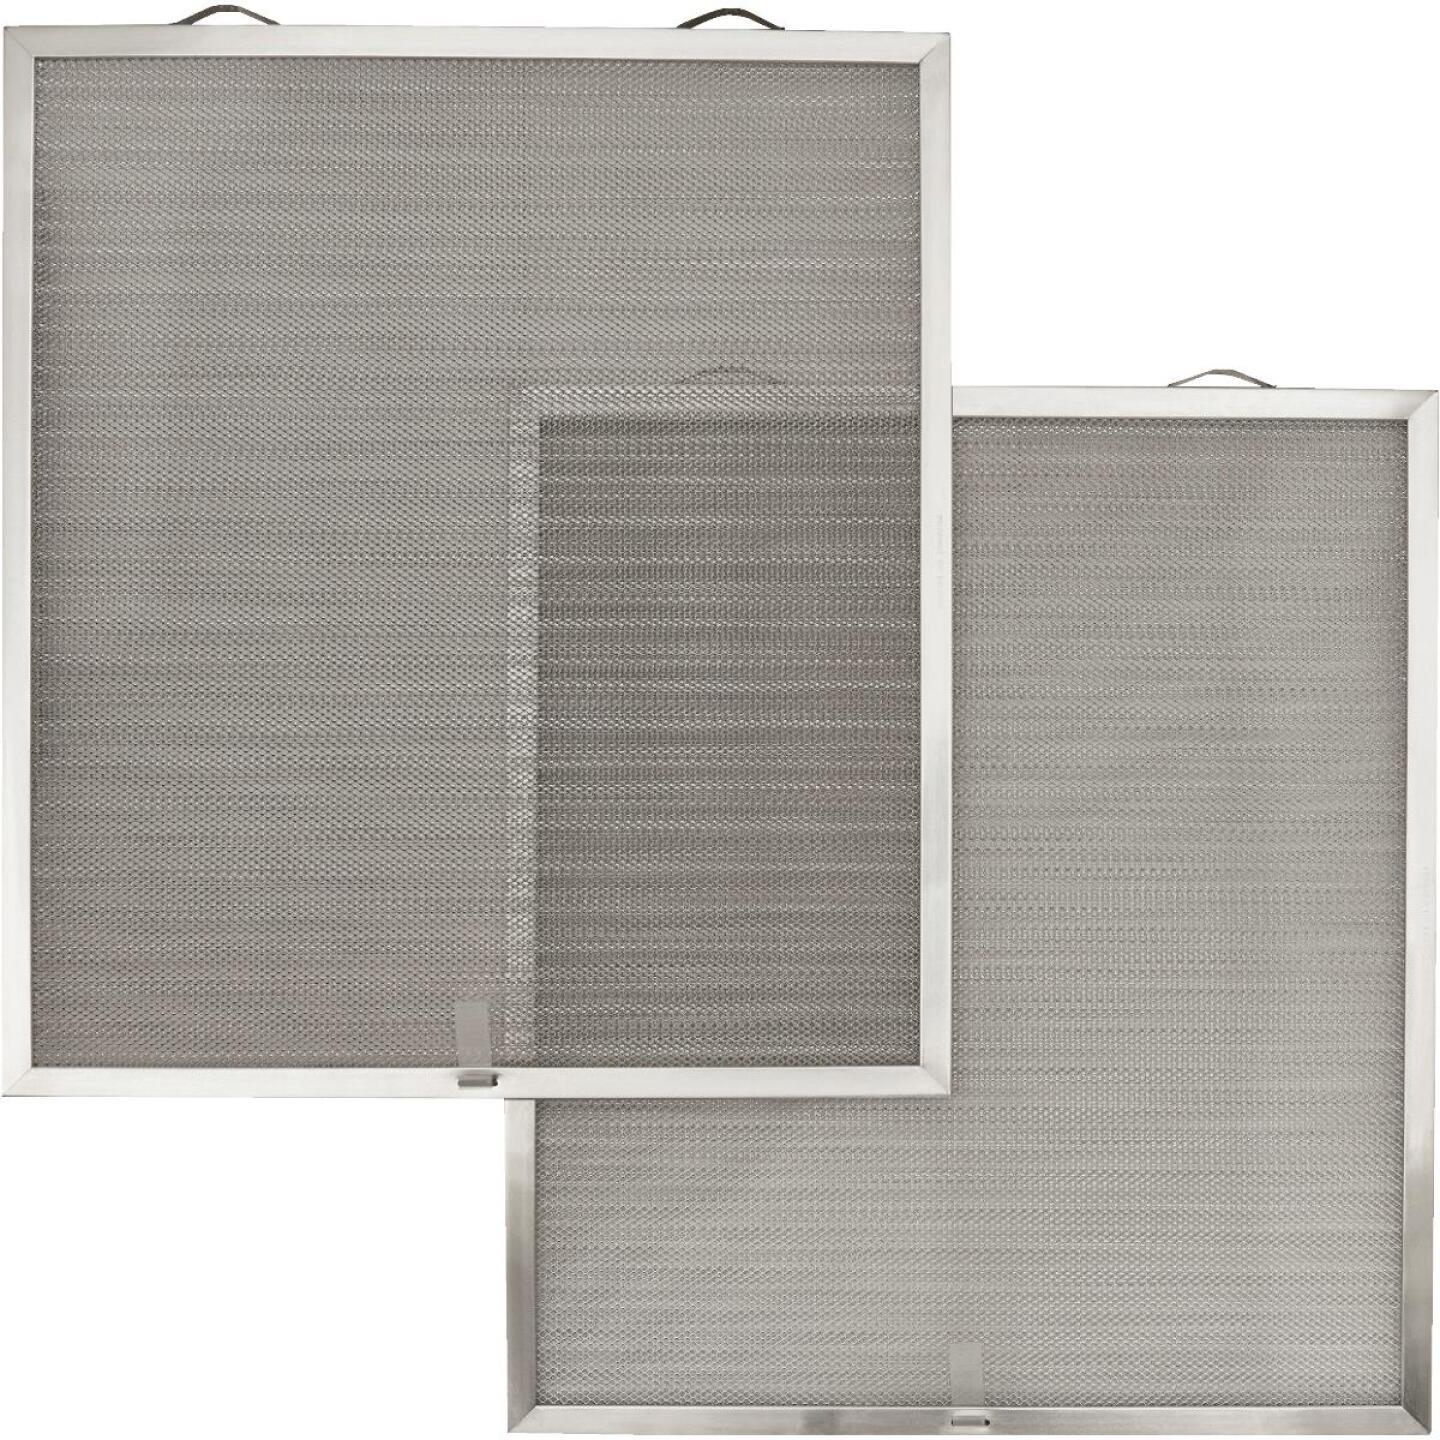 Broan-Nutone Open Mesh Aluminum Range Hood Grease Filter (2-Pack) Image 1